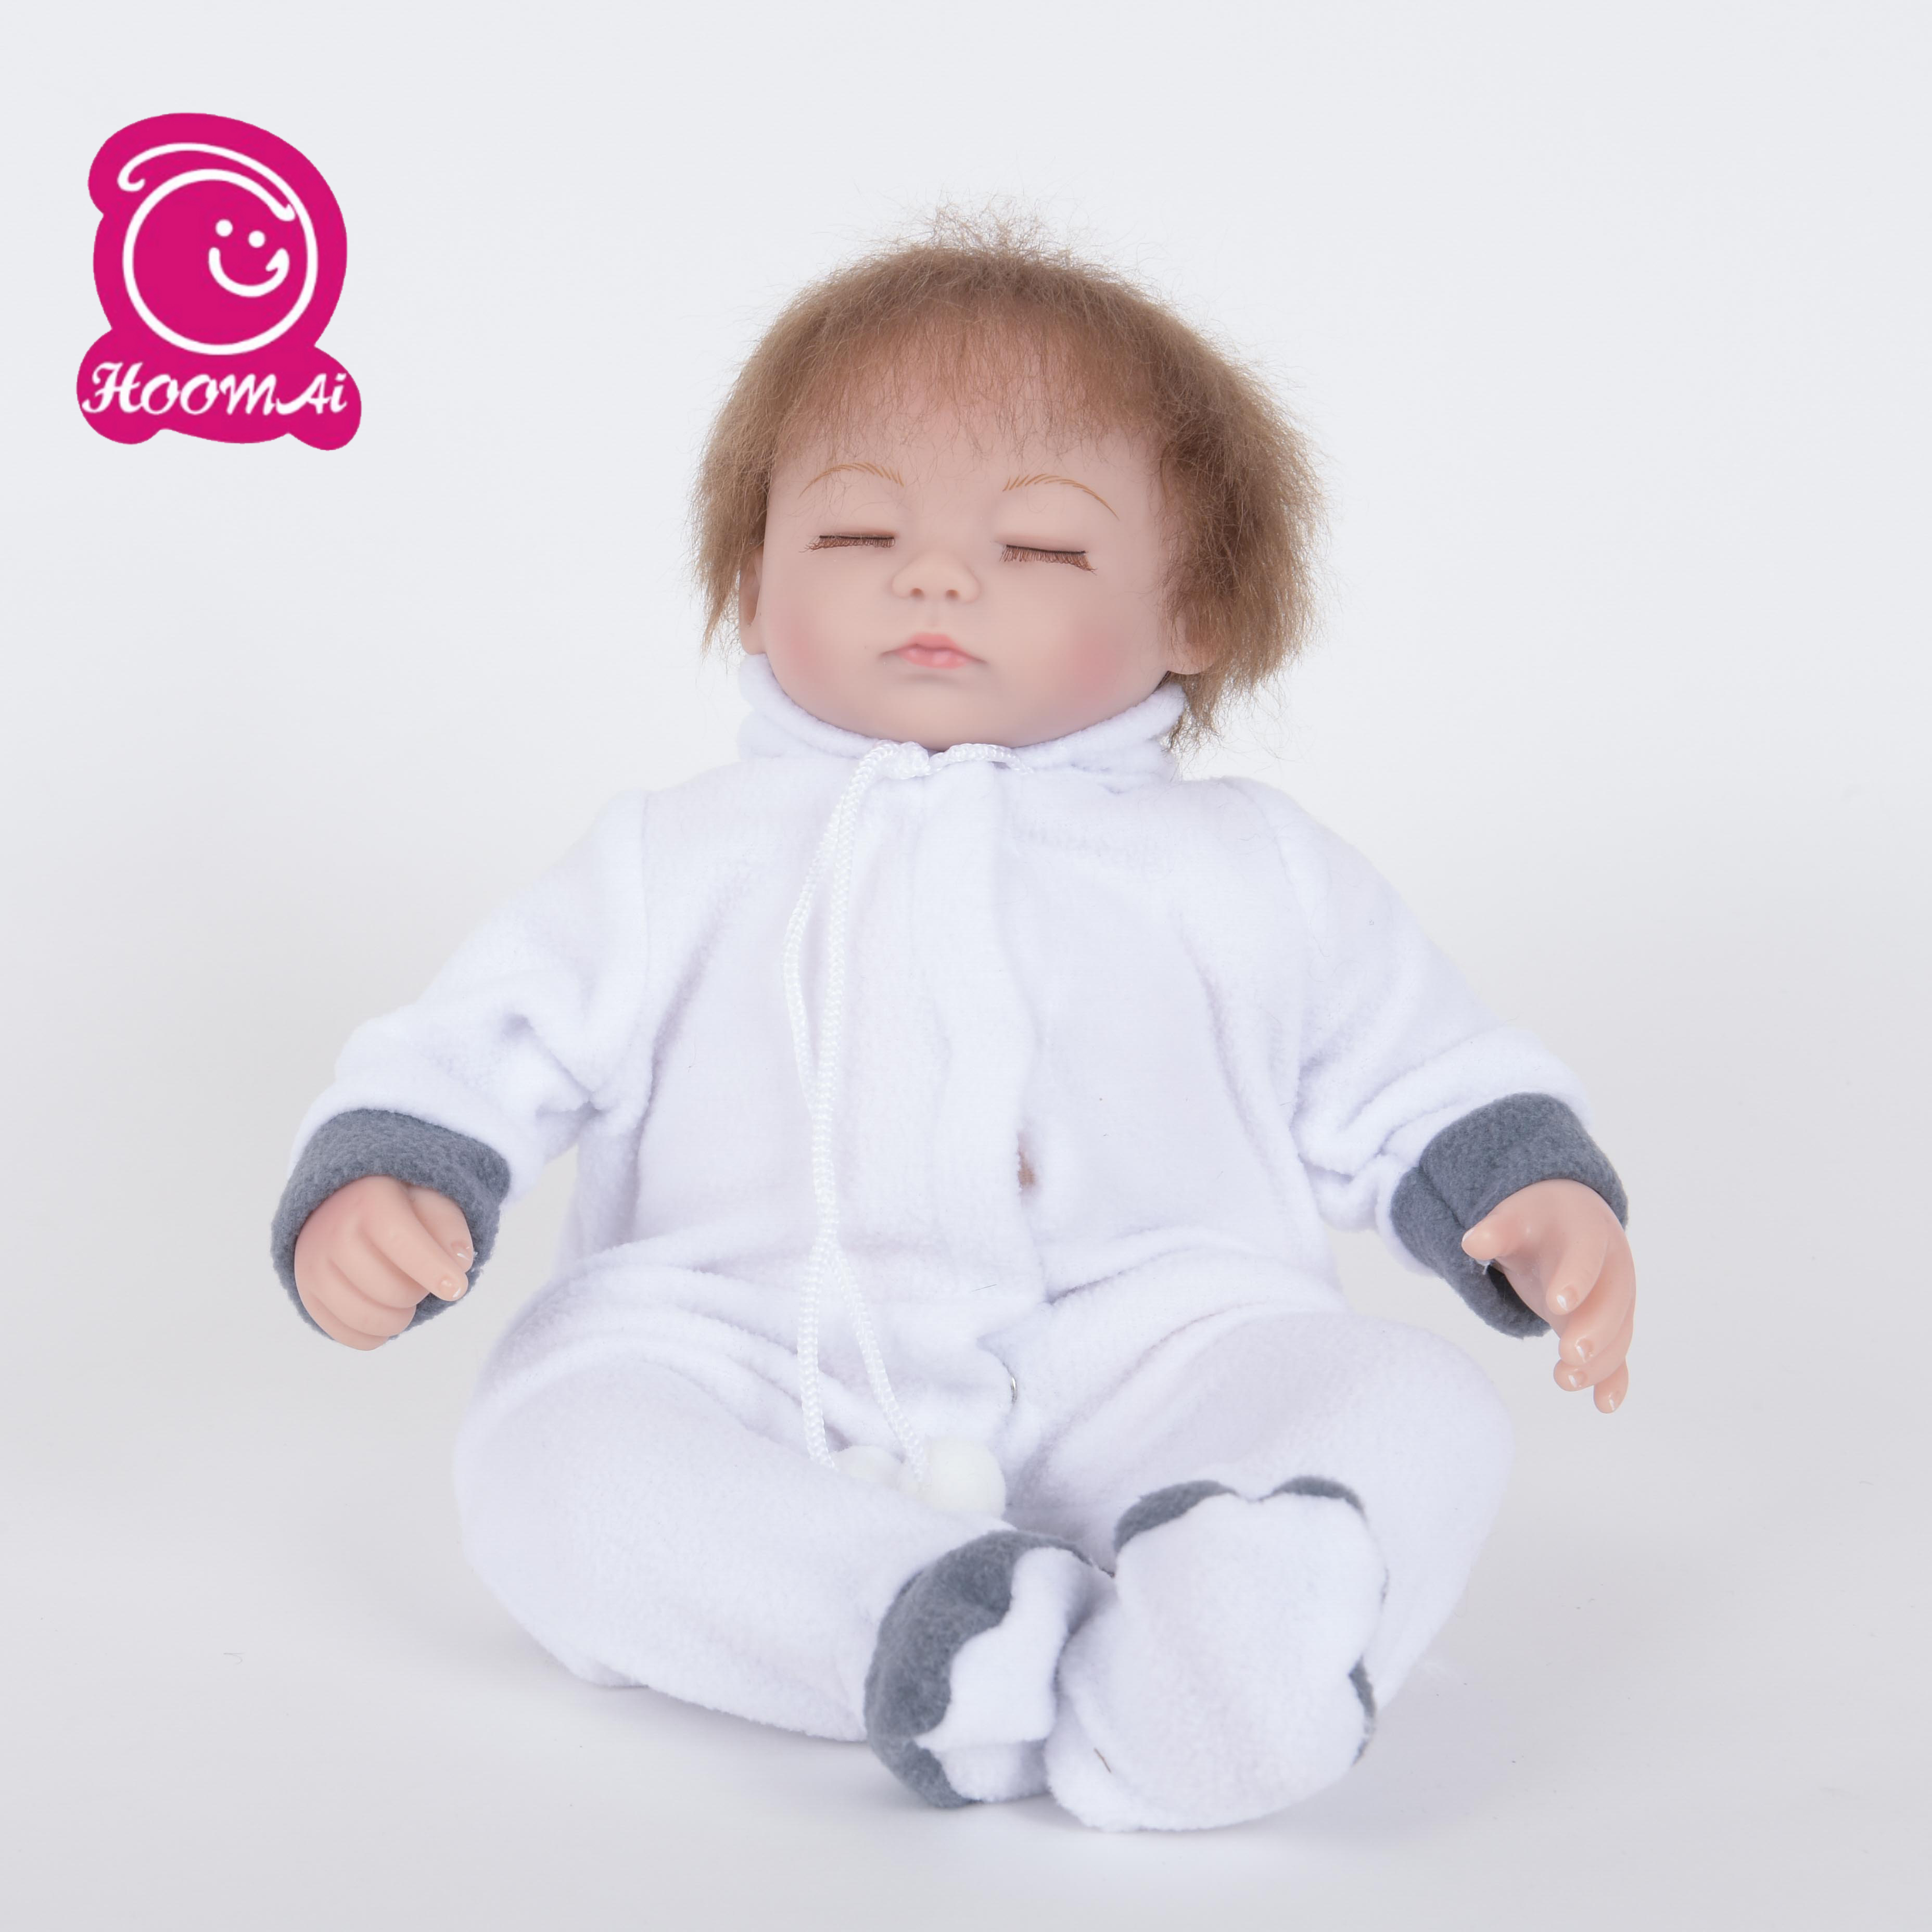 17 Baby Alive Doll Kids ToysAdorable Curved Hair Cloth Body Baby Doll Kids Brinquedos Playmate Reborn Baby17 Baby Alive Doll Kids ToysAdorable Curved Hair Cloth Body Baby Doll Kids Brinquedos Playmate Reborn Baby